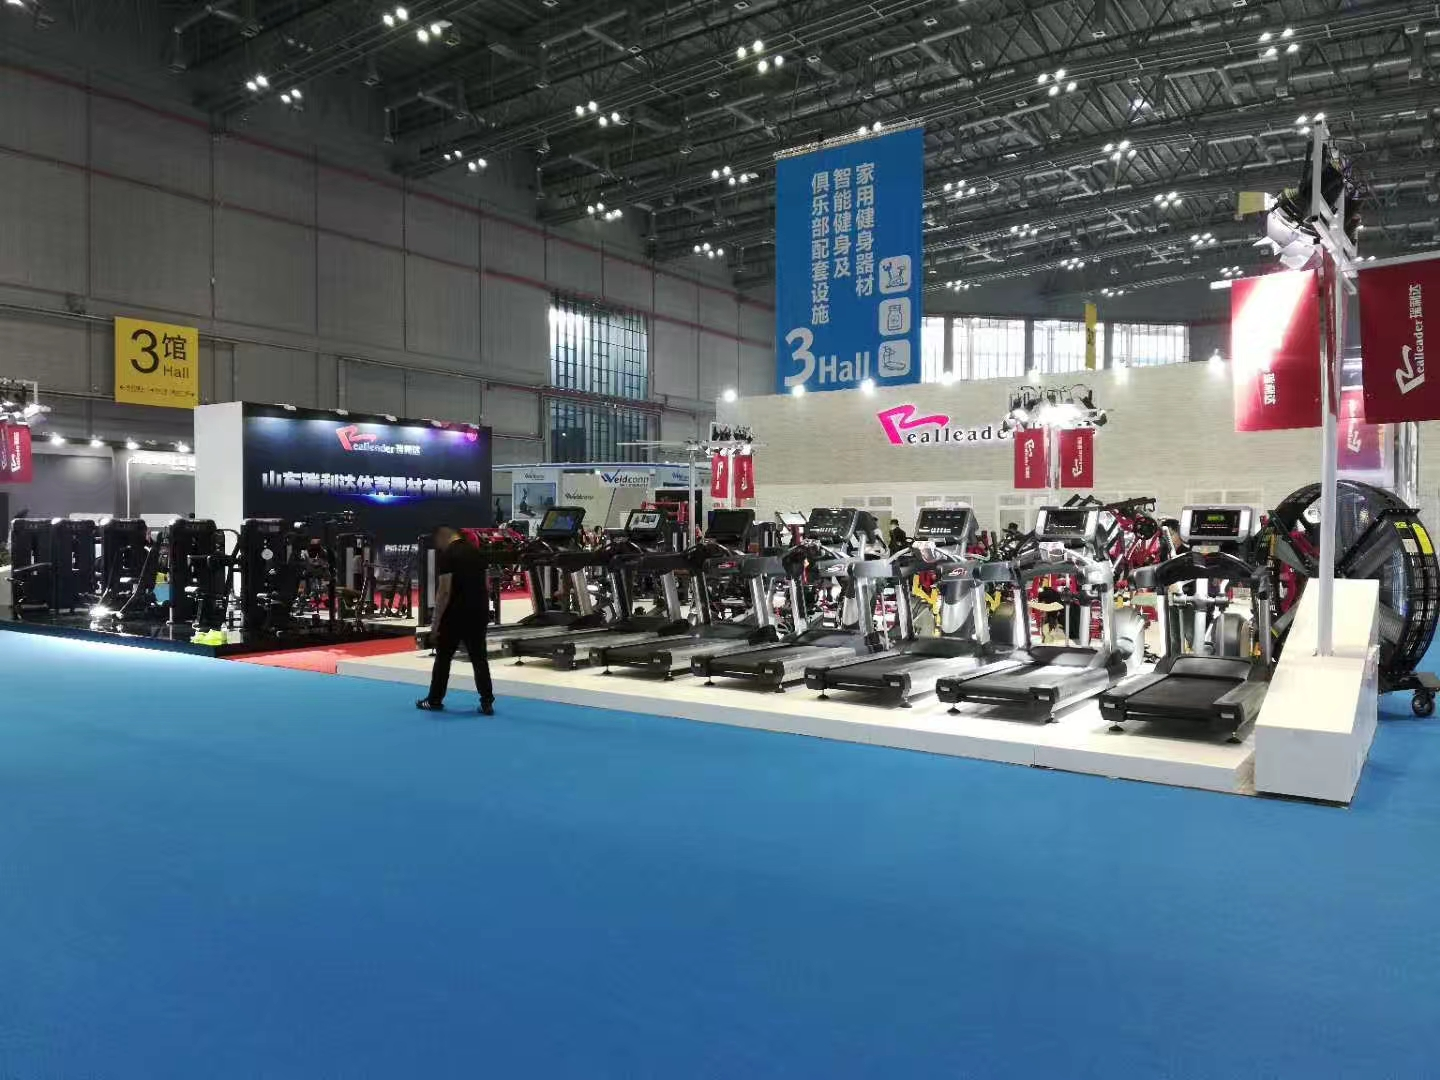 Realleader USA at China International Sport Show in Shanghai